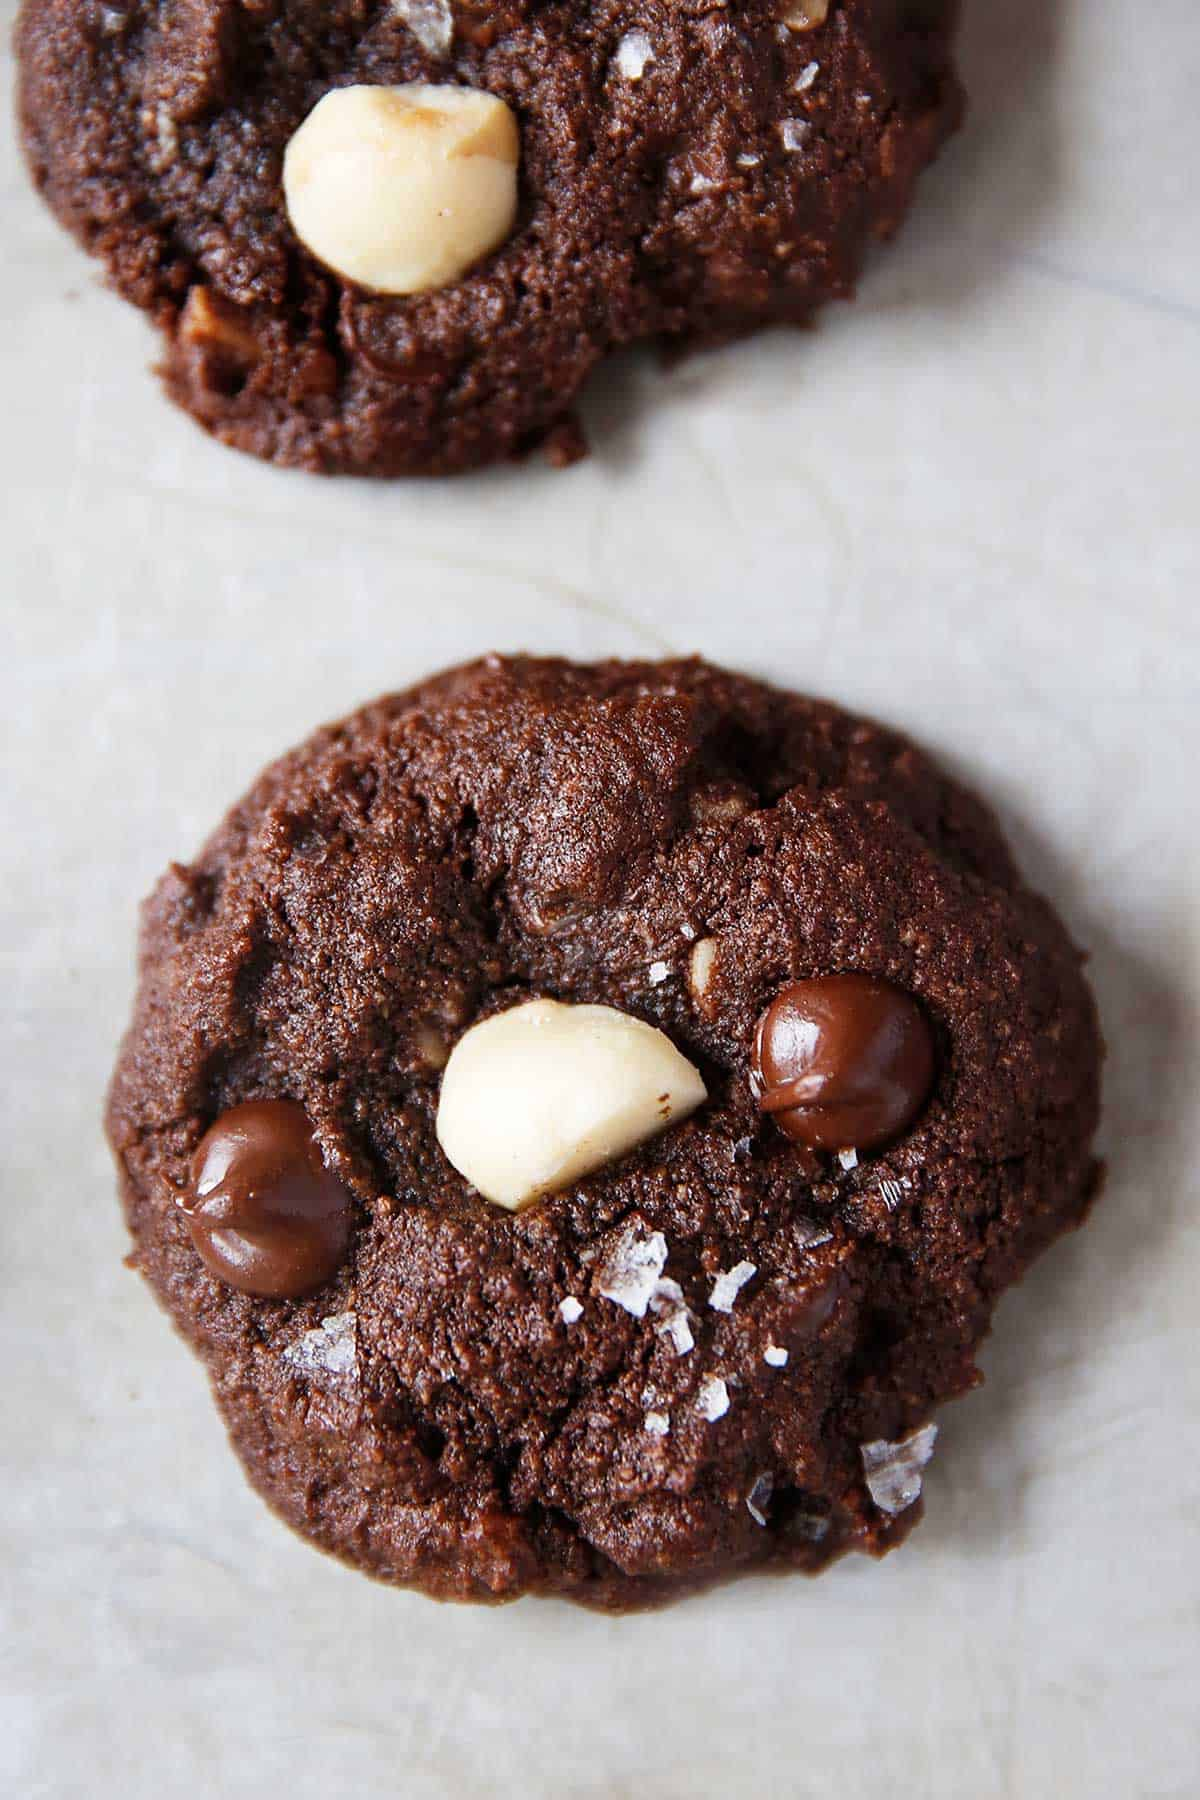 Chocolate Macadamia Nut Cookies